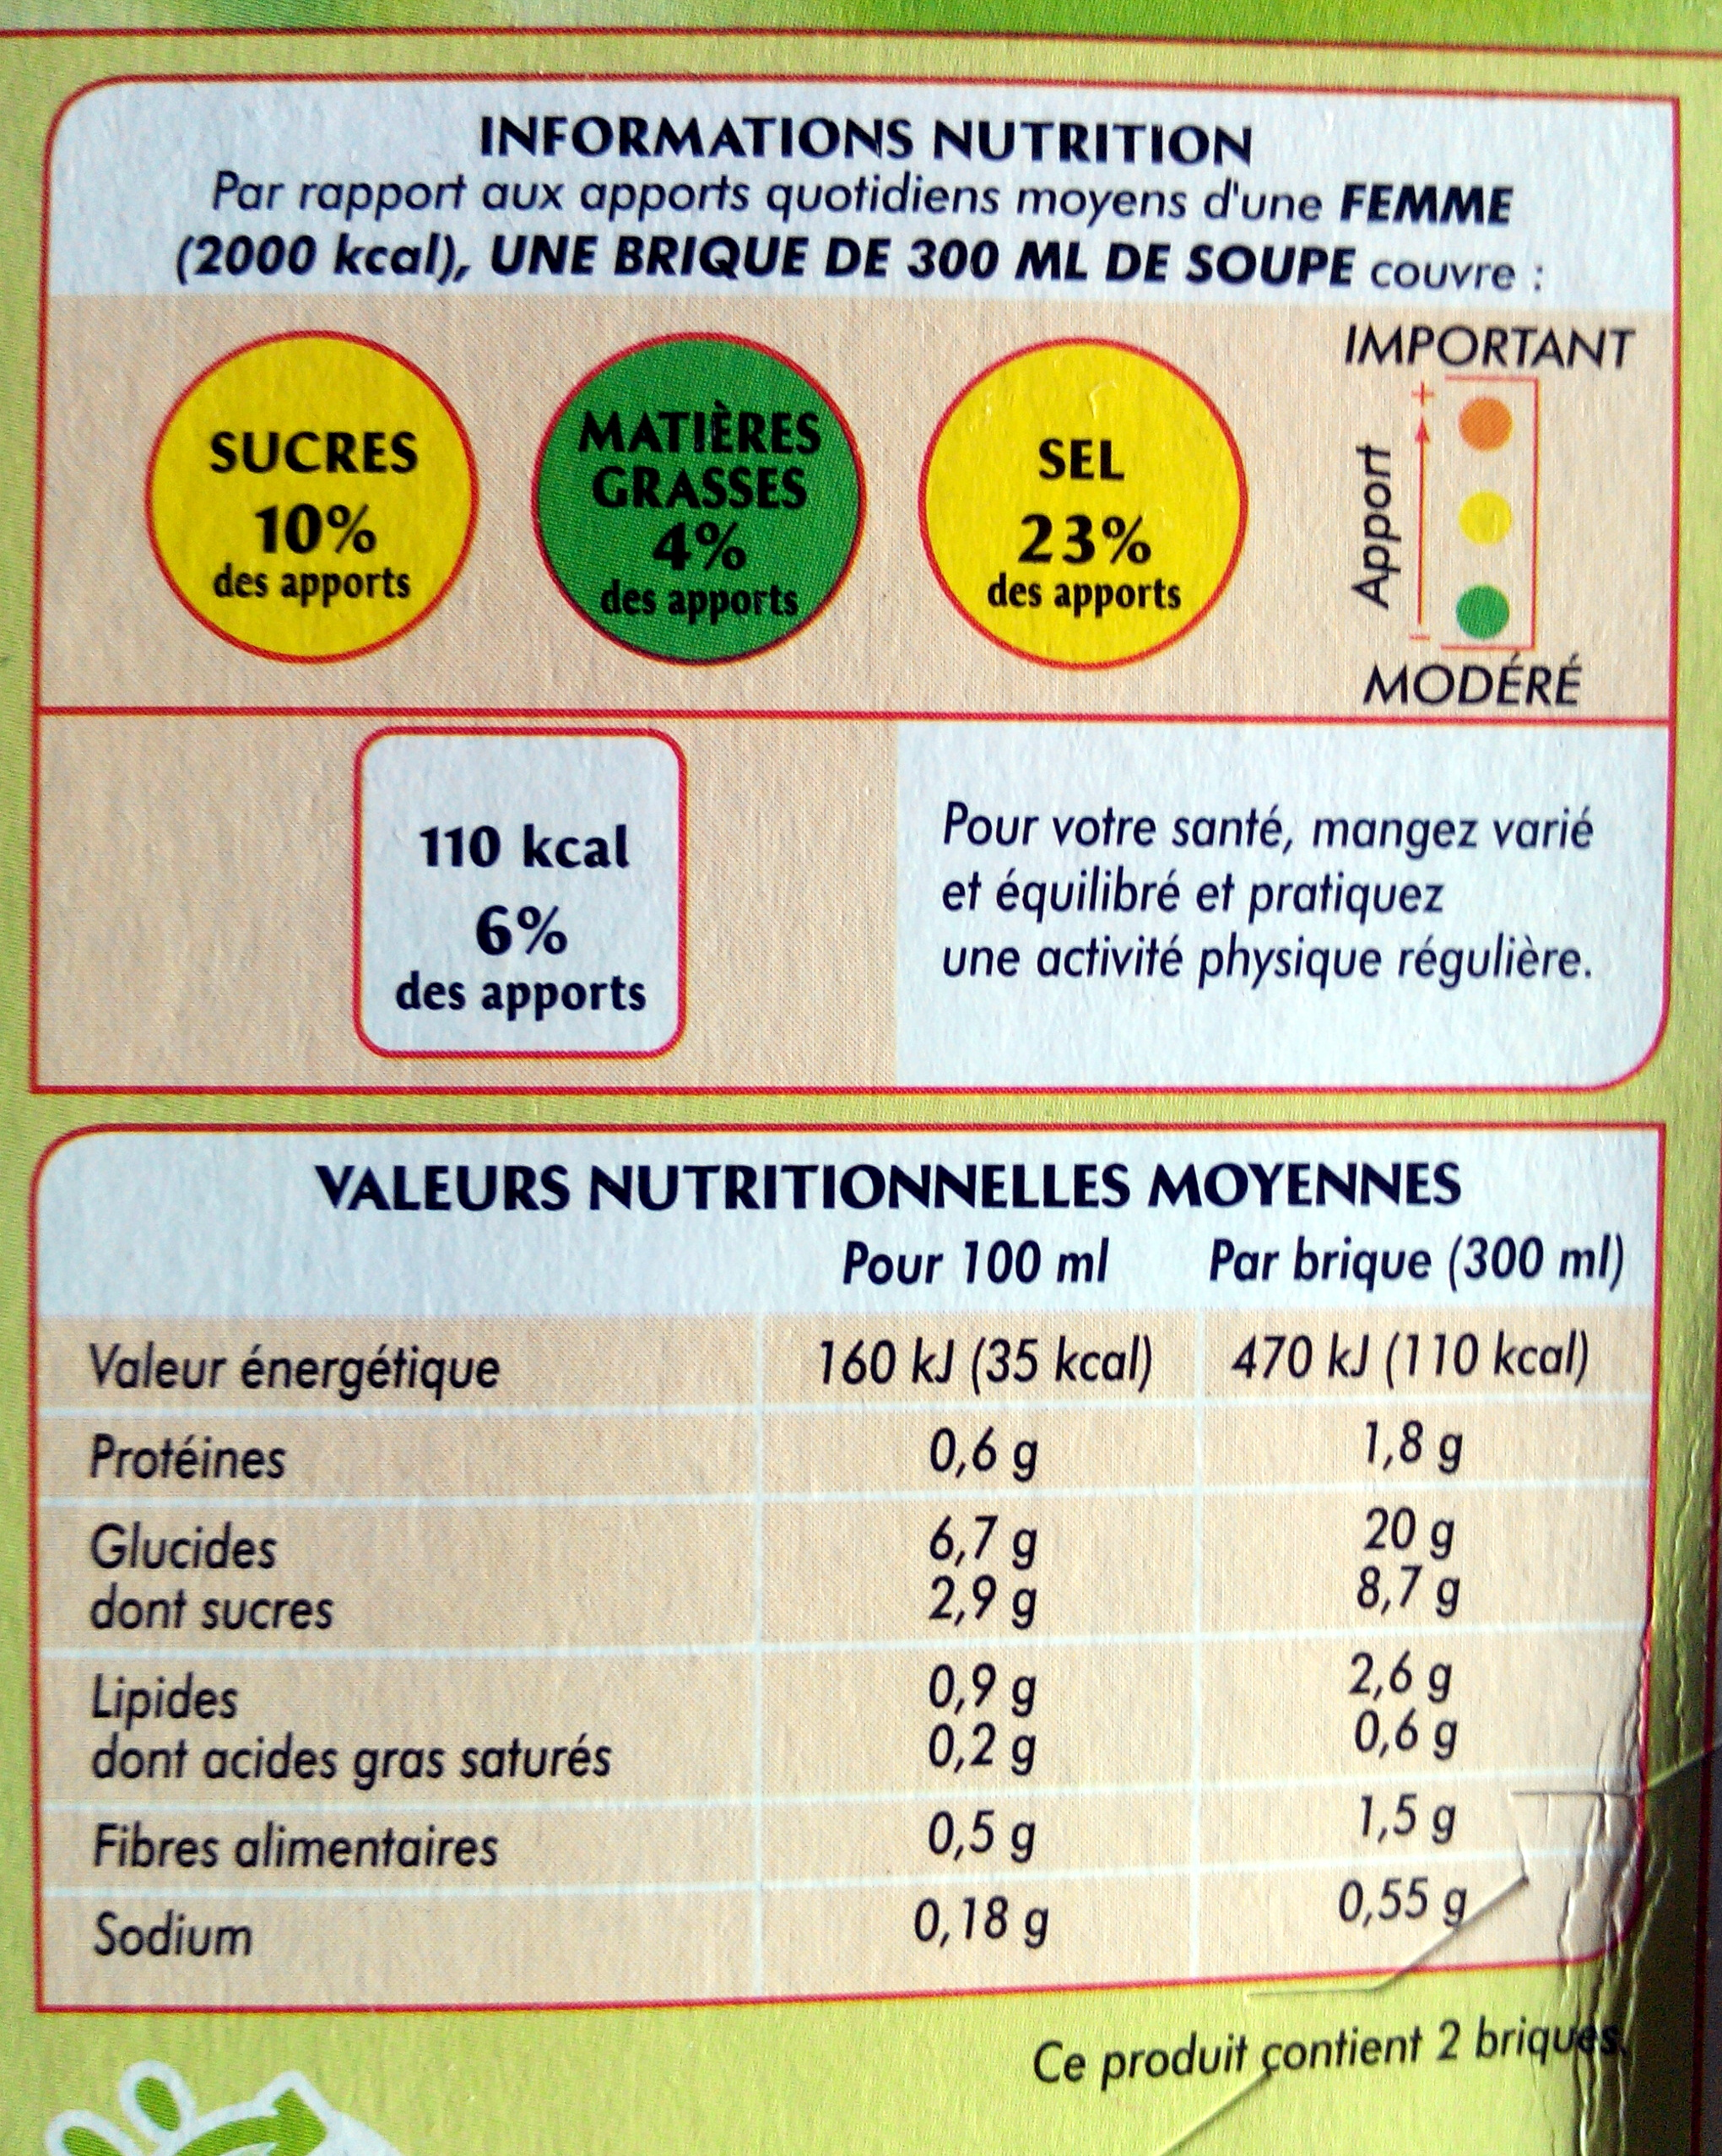 Veloute tomates basilic - Nutrition facts